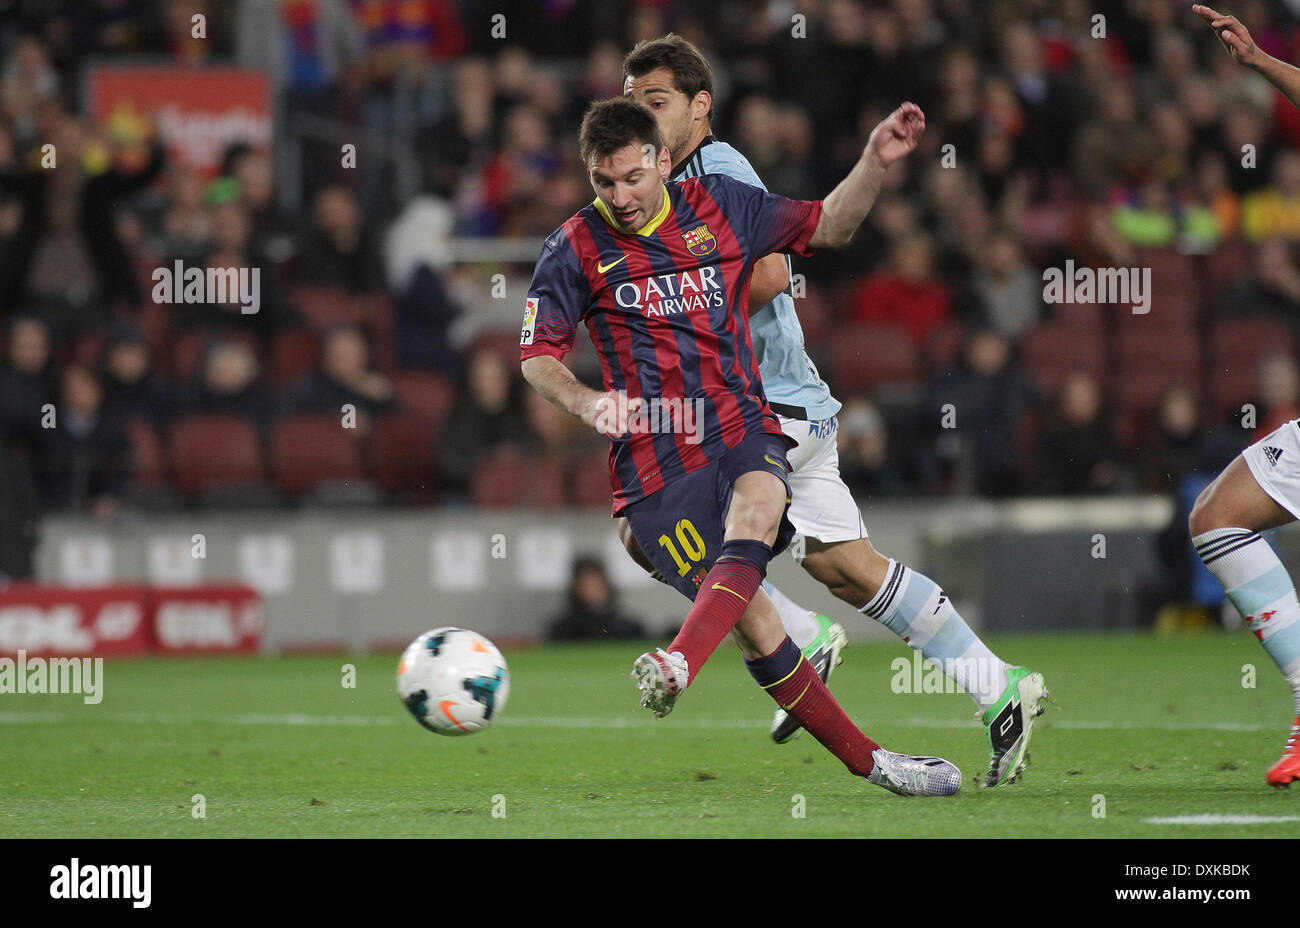 26.03.2014  Barcelona, Spain.  Messi  in action during the Liga BBVA game between Barcelona and Celta Vigo from Camp Nou - Stock Image